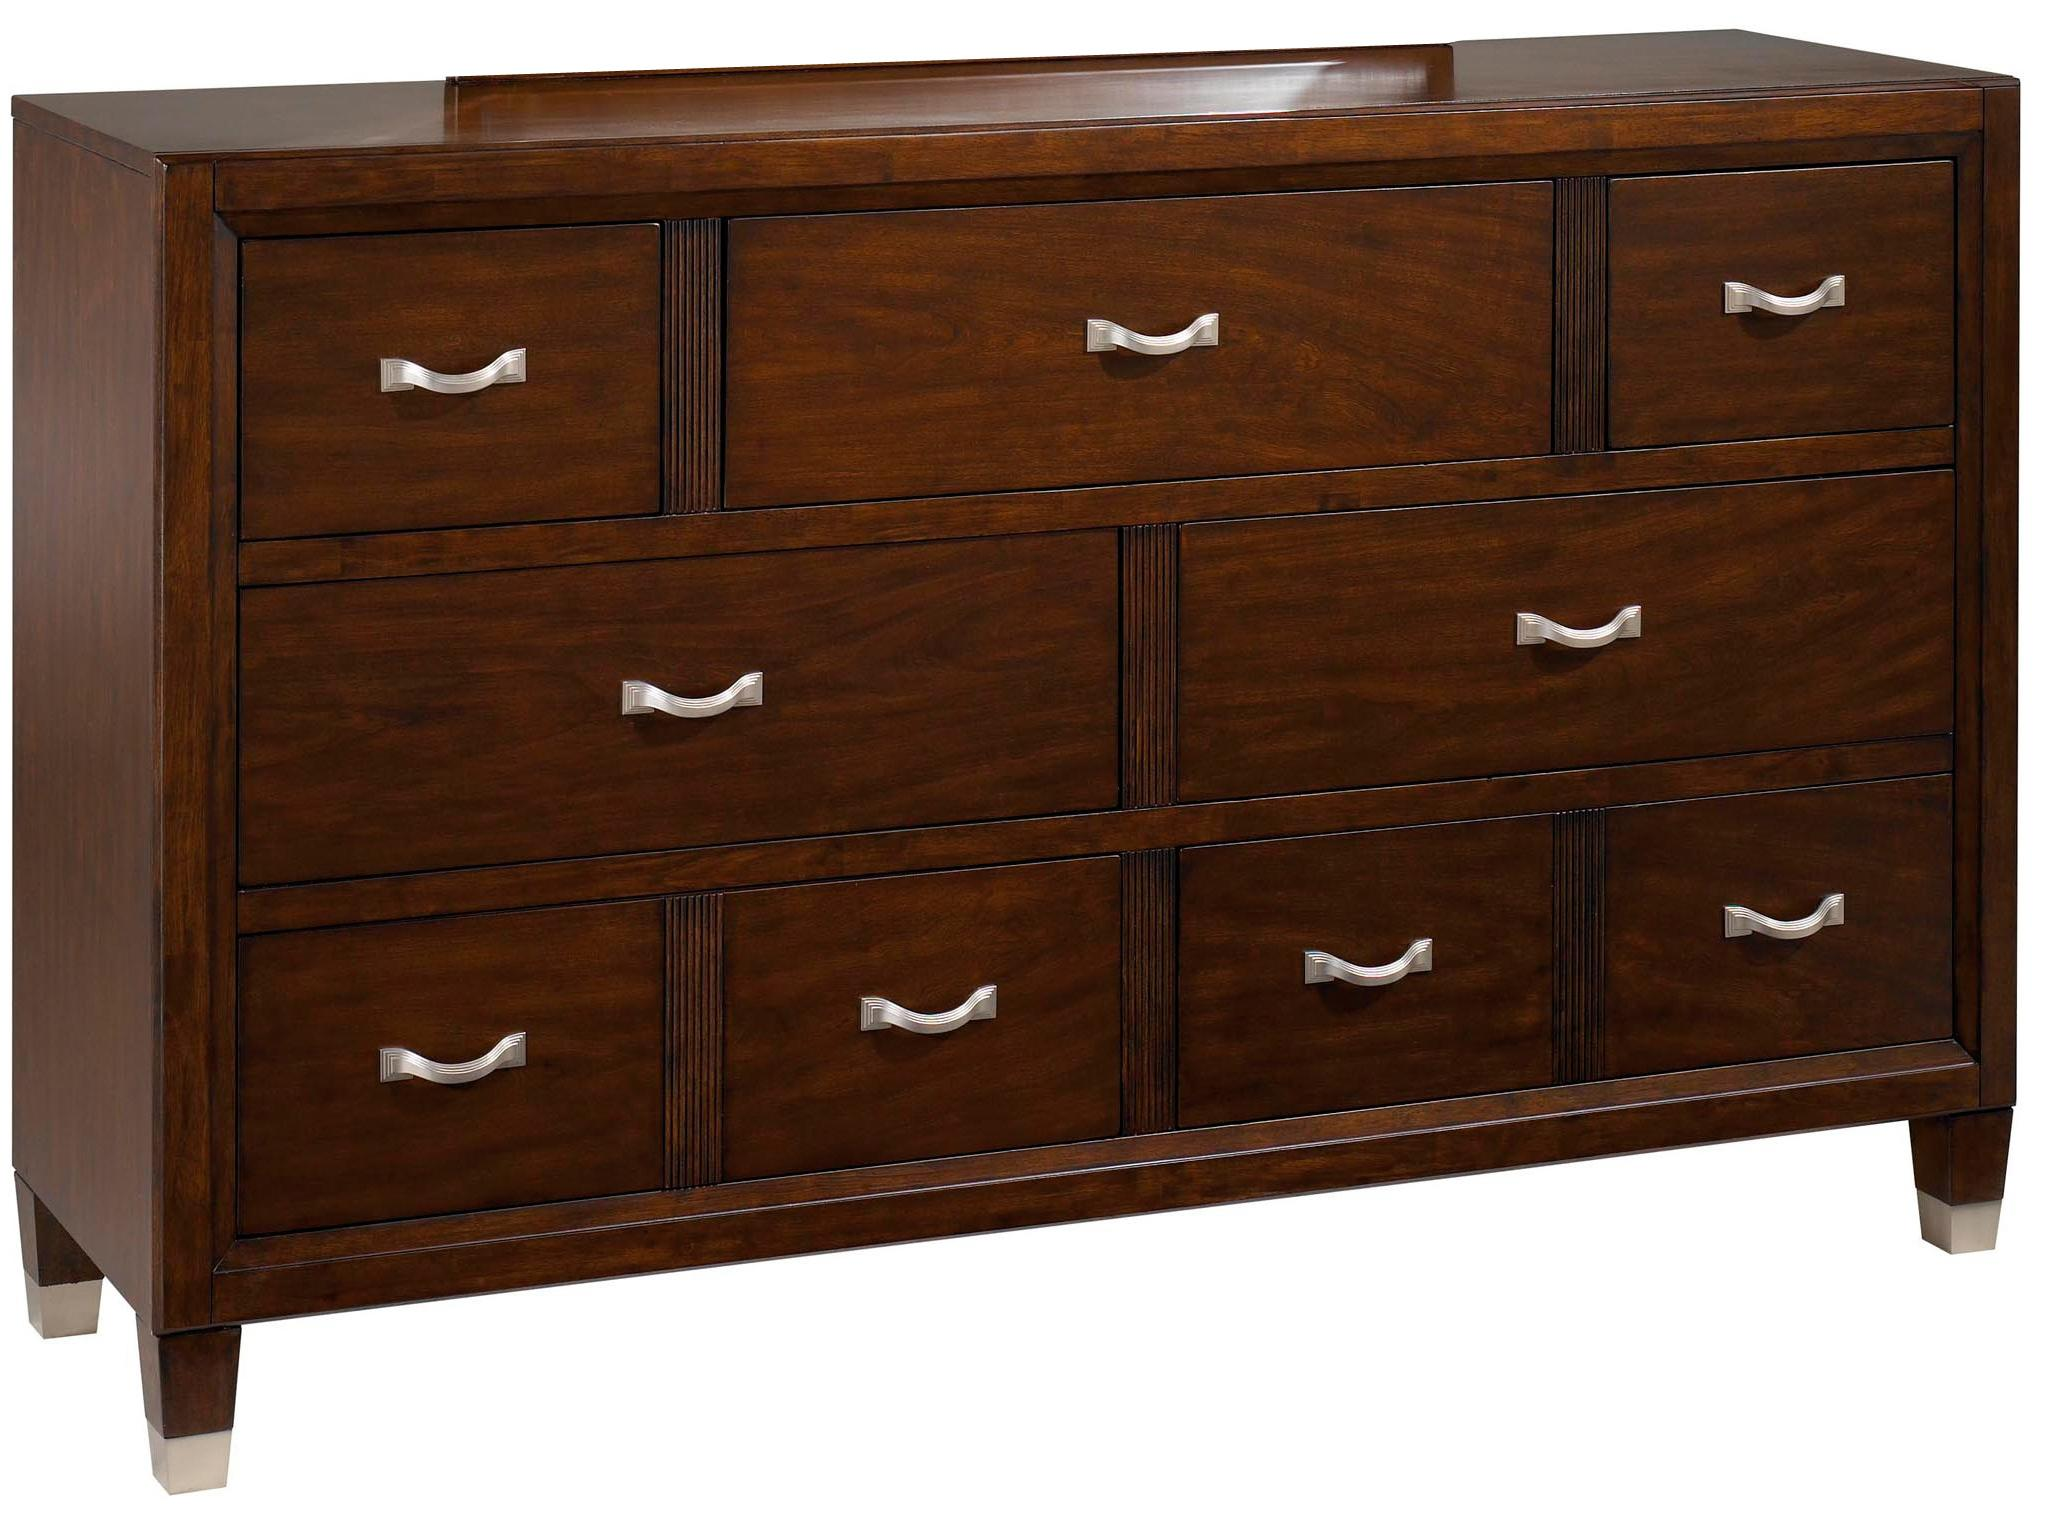 Drawer Dresser with 7 drawers and Felt Lined Top Drawers by